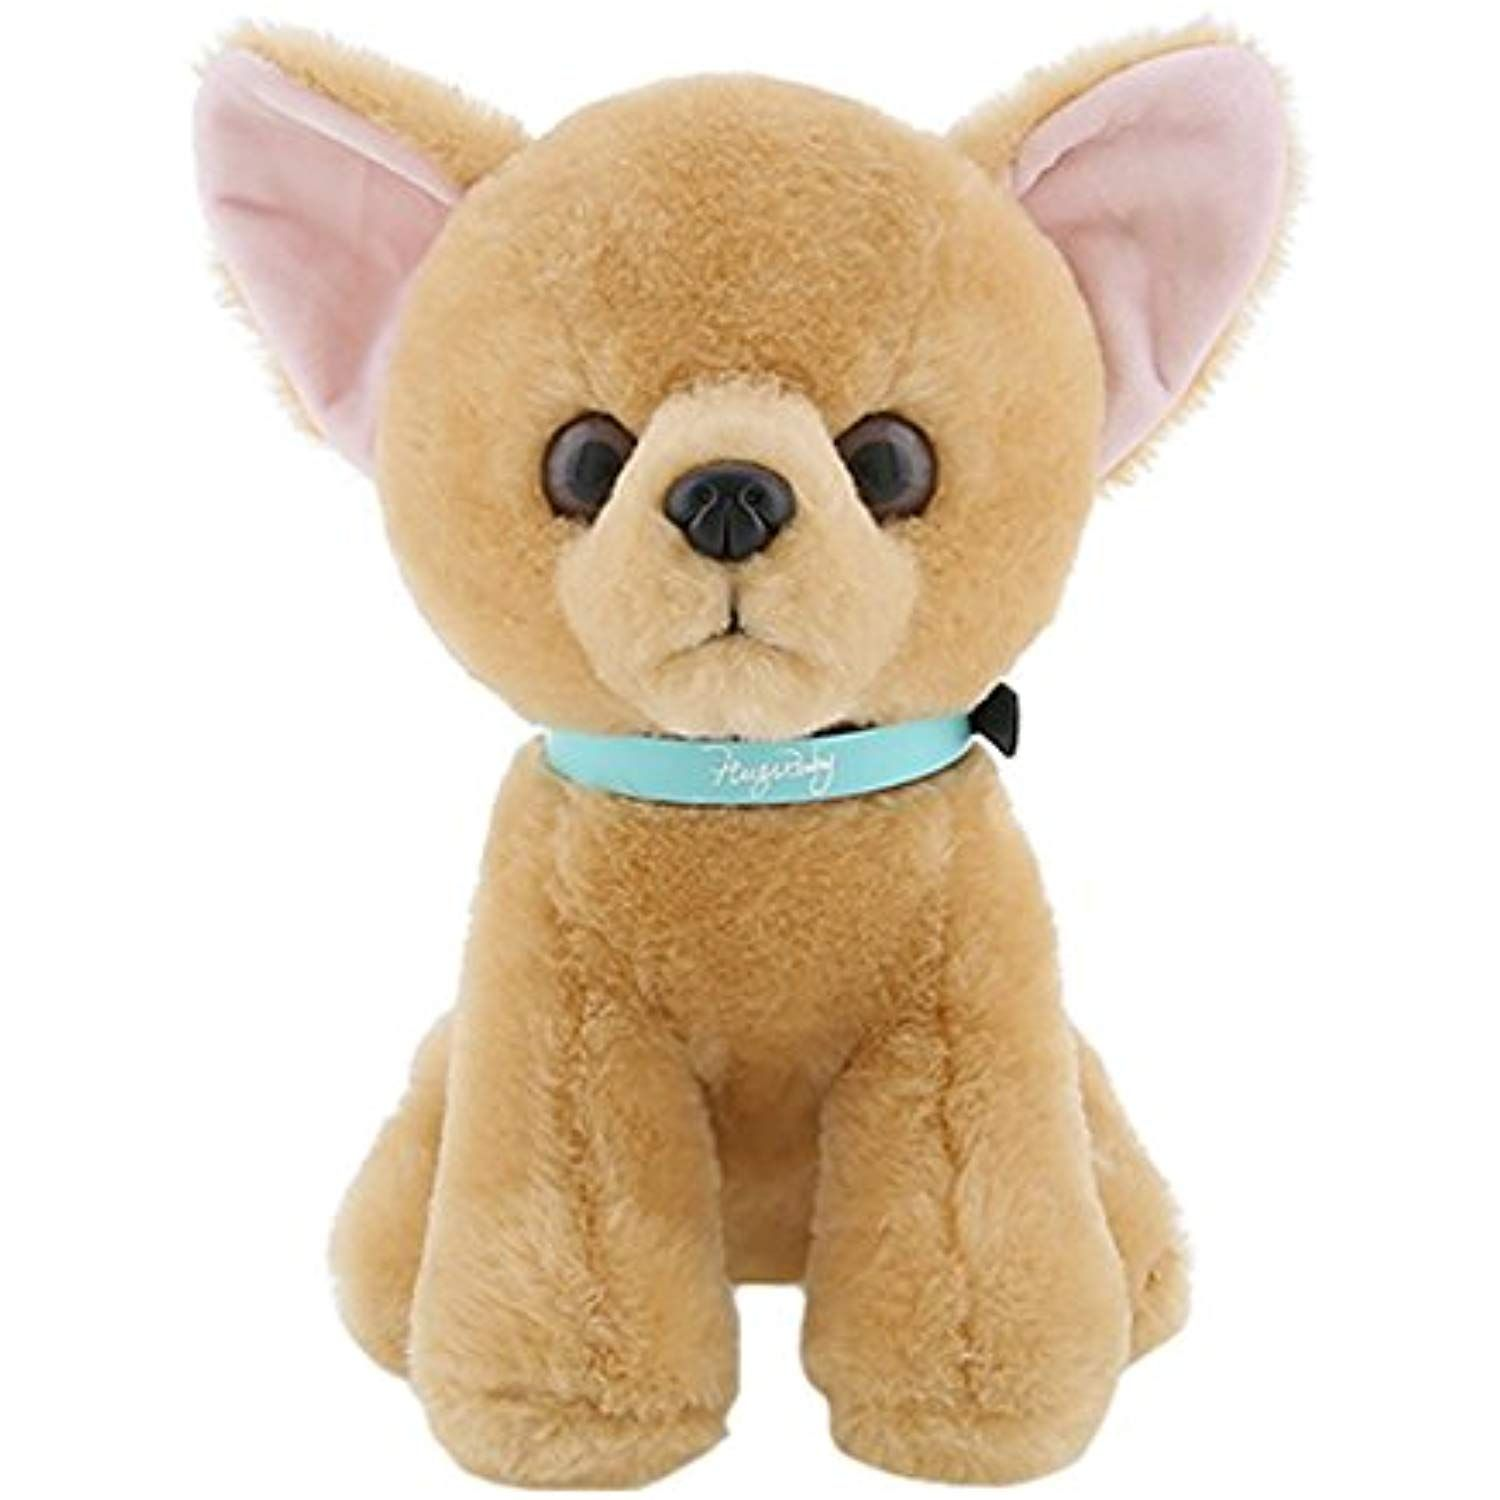 9 Cuddly Soft Stuffed Animal Toy Chihuahua Dog Doll Party Toys Kids